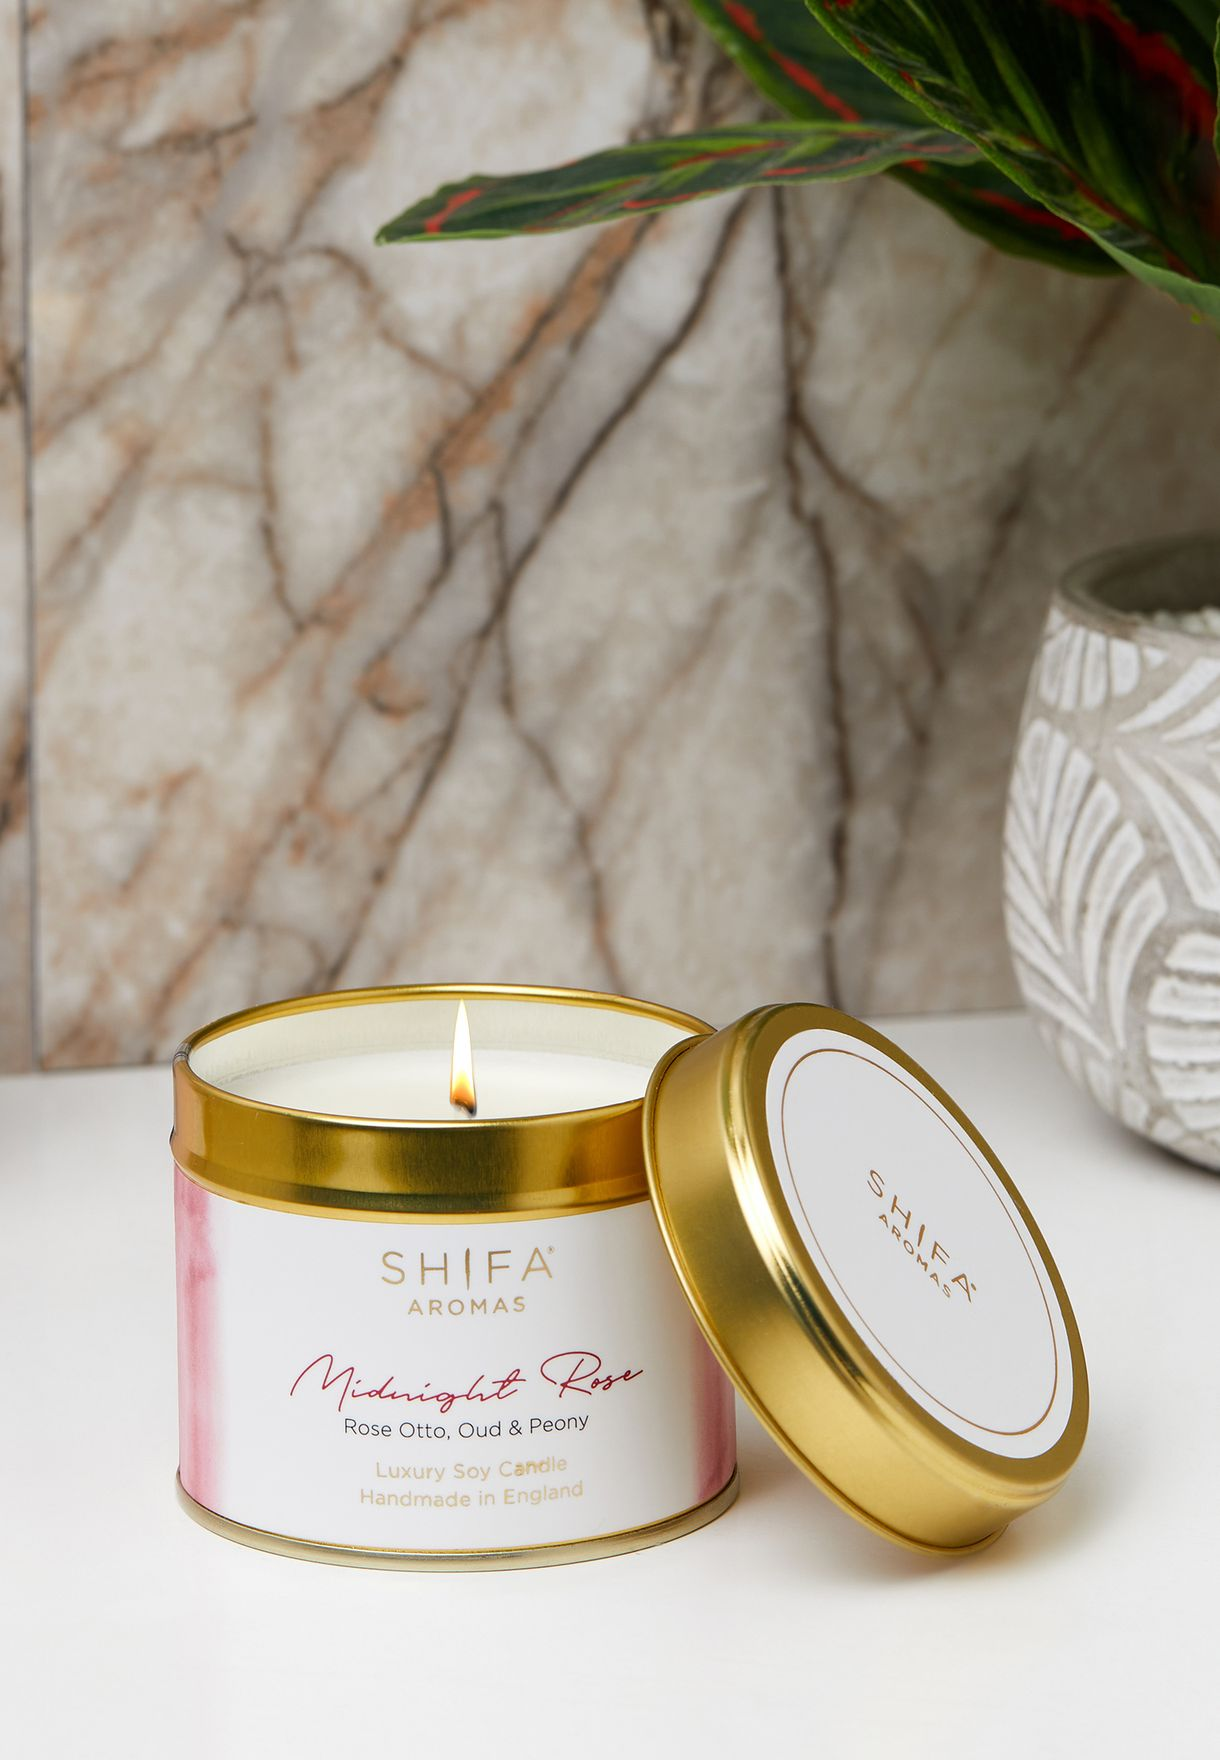 Rose Otto, Oud & Peony Candle 200g